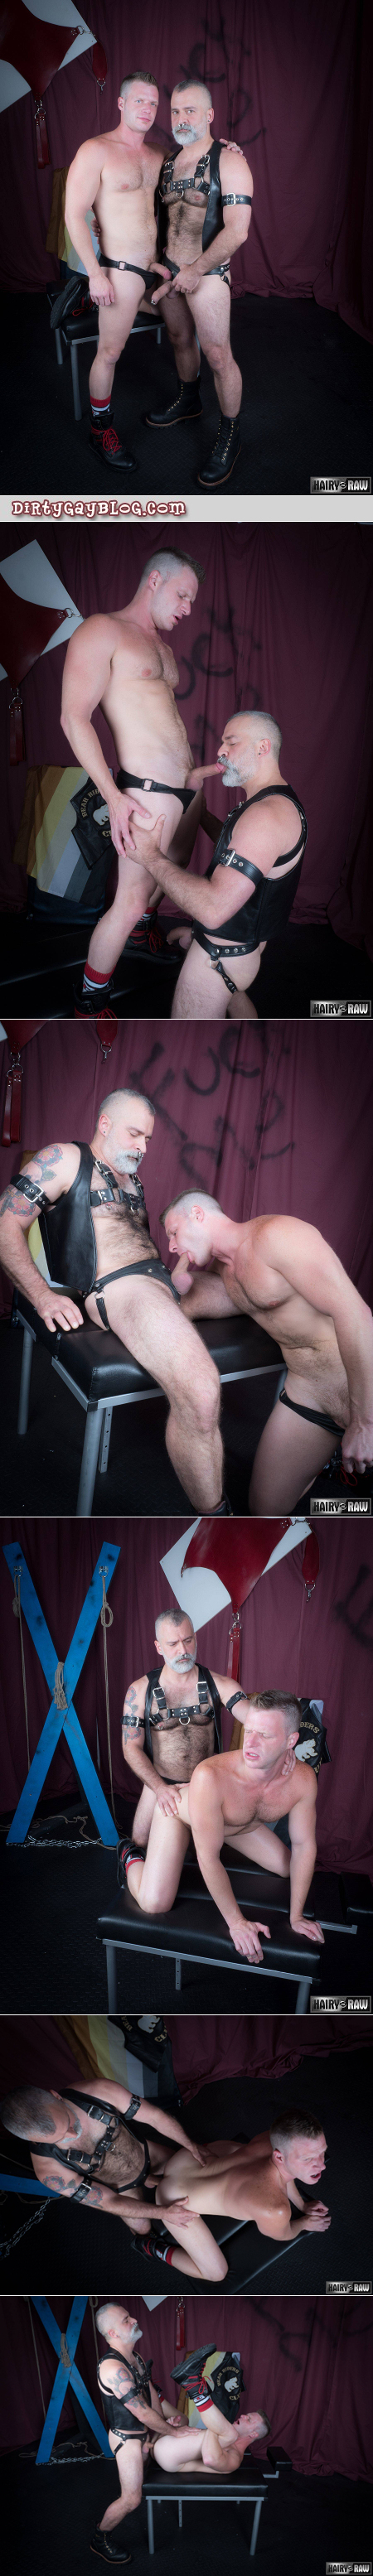 Leather Daddy fucking his boy bareback.